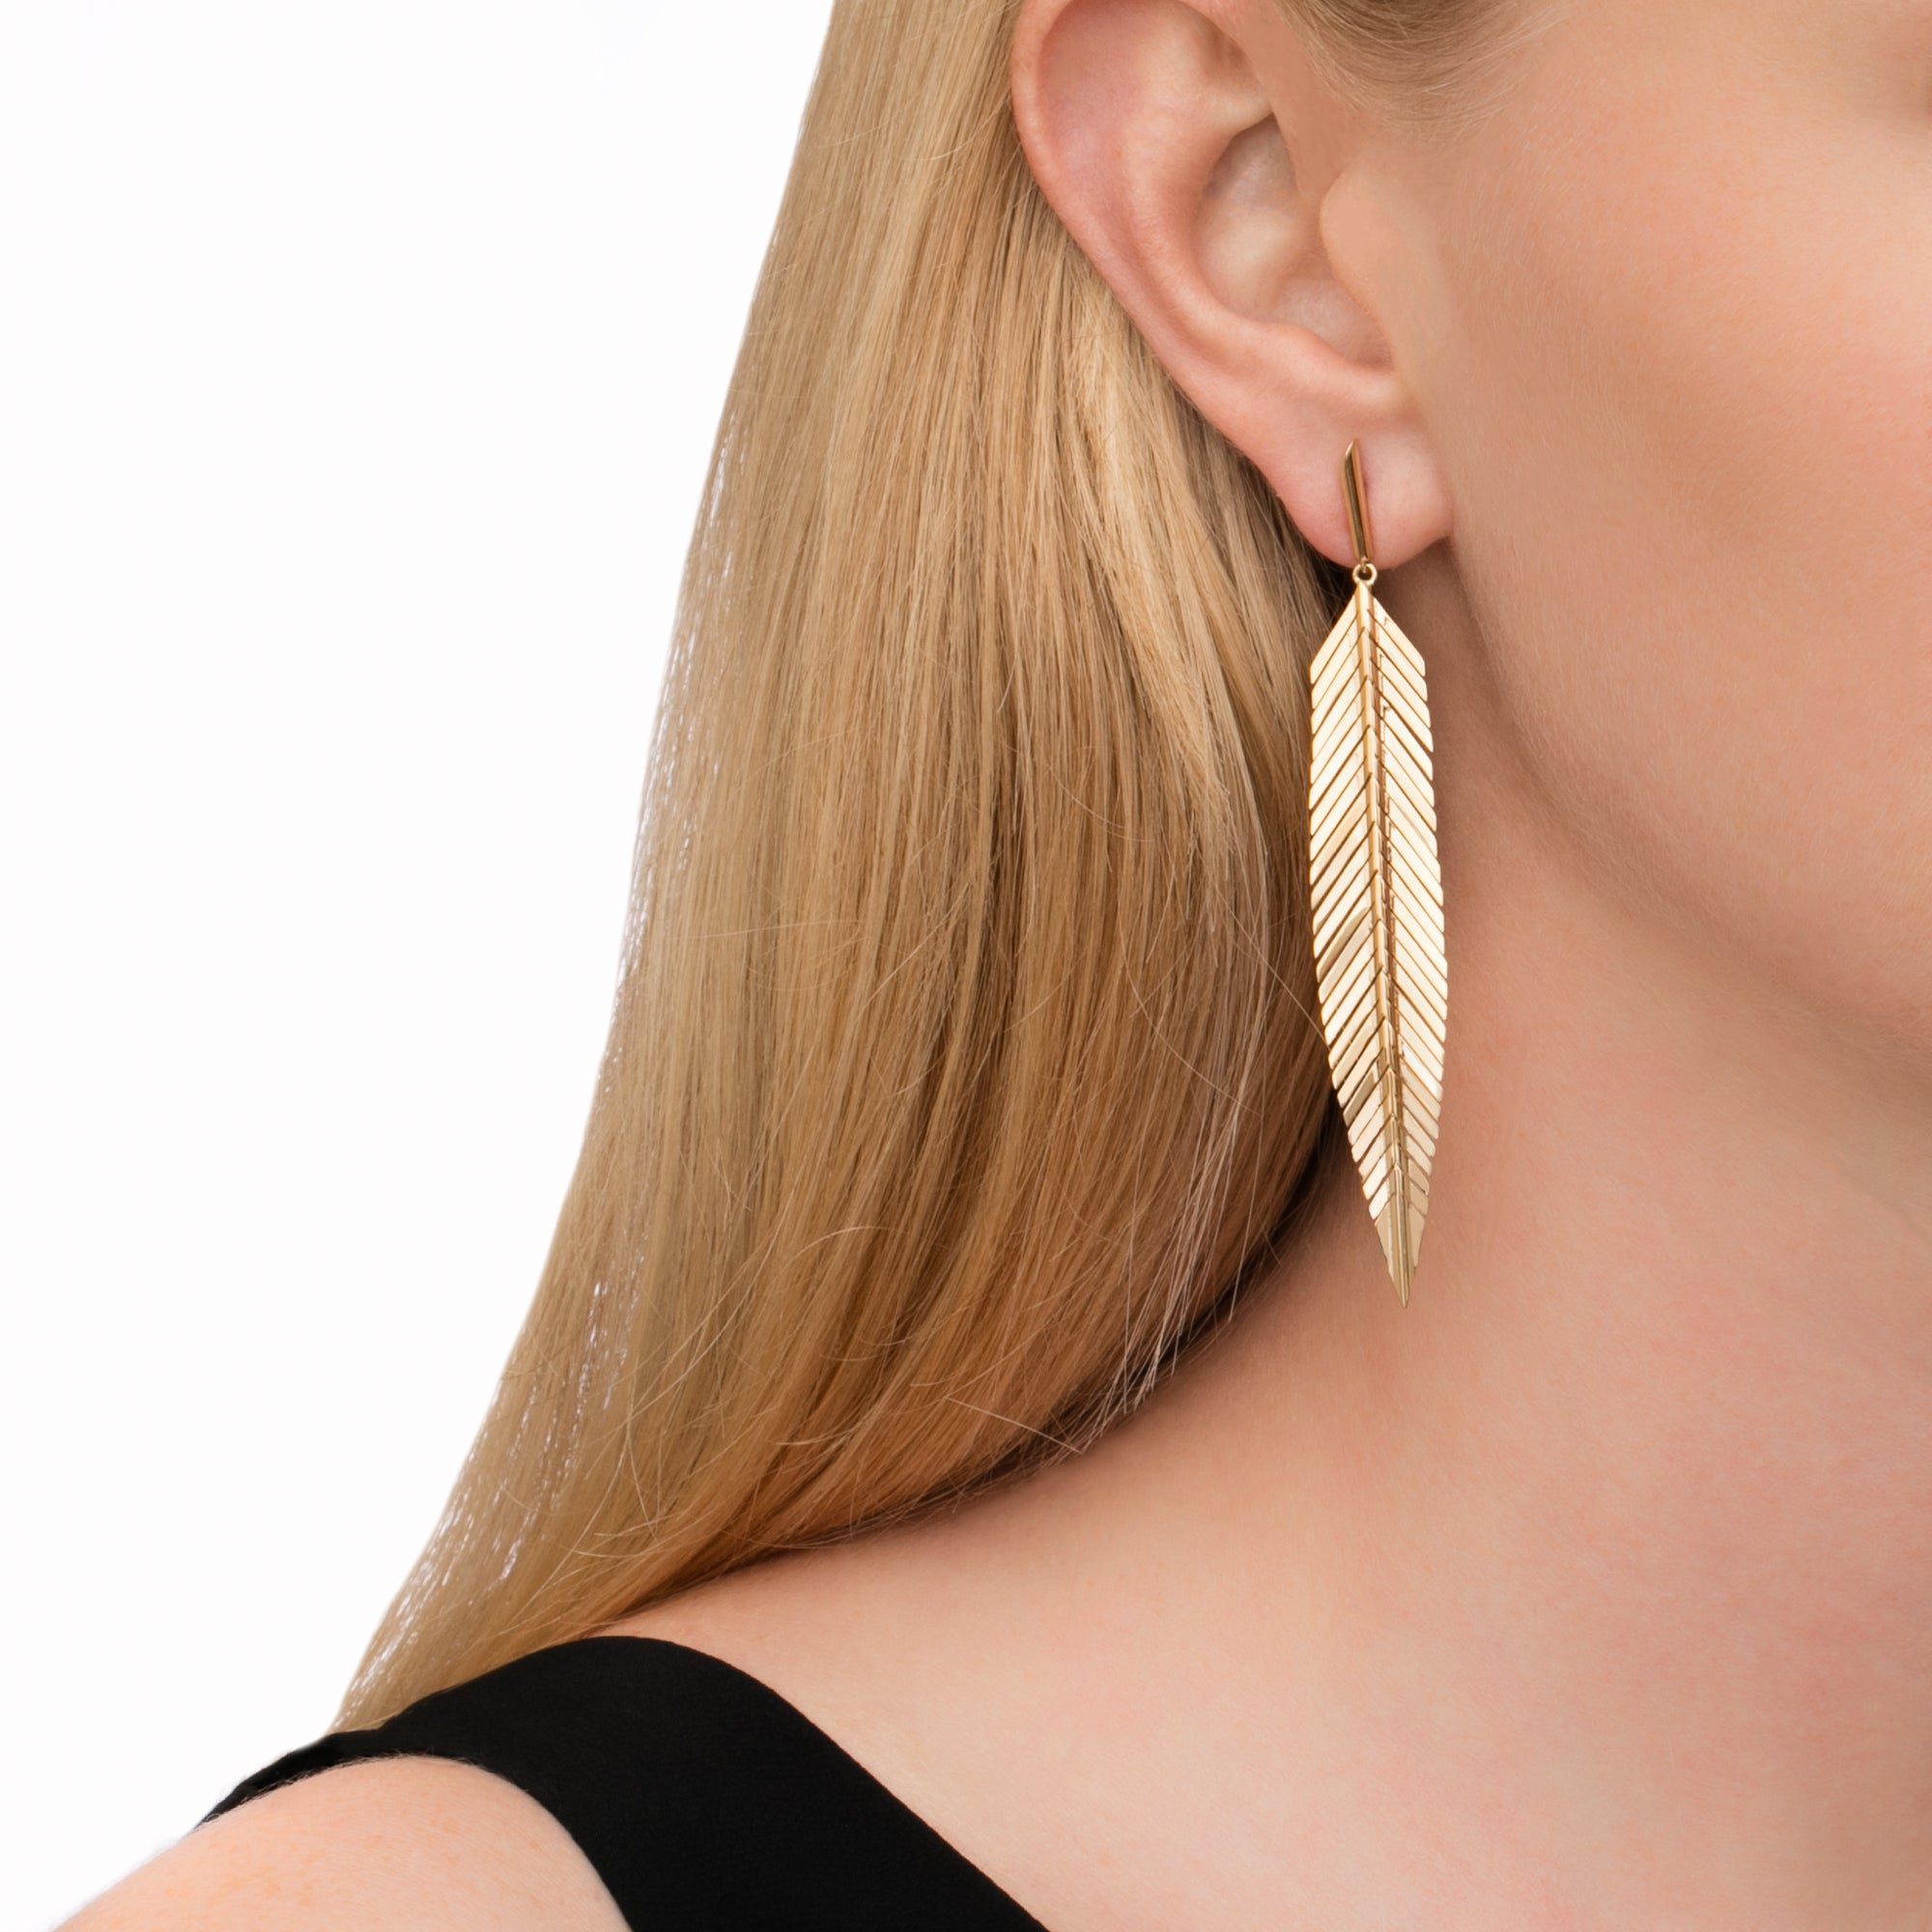 Medium Feather Earrings - Cadar - Earrings | Broken English Jewelry